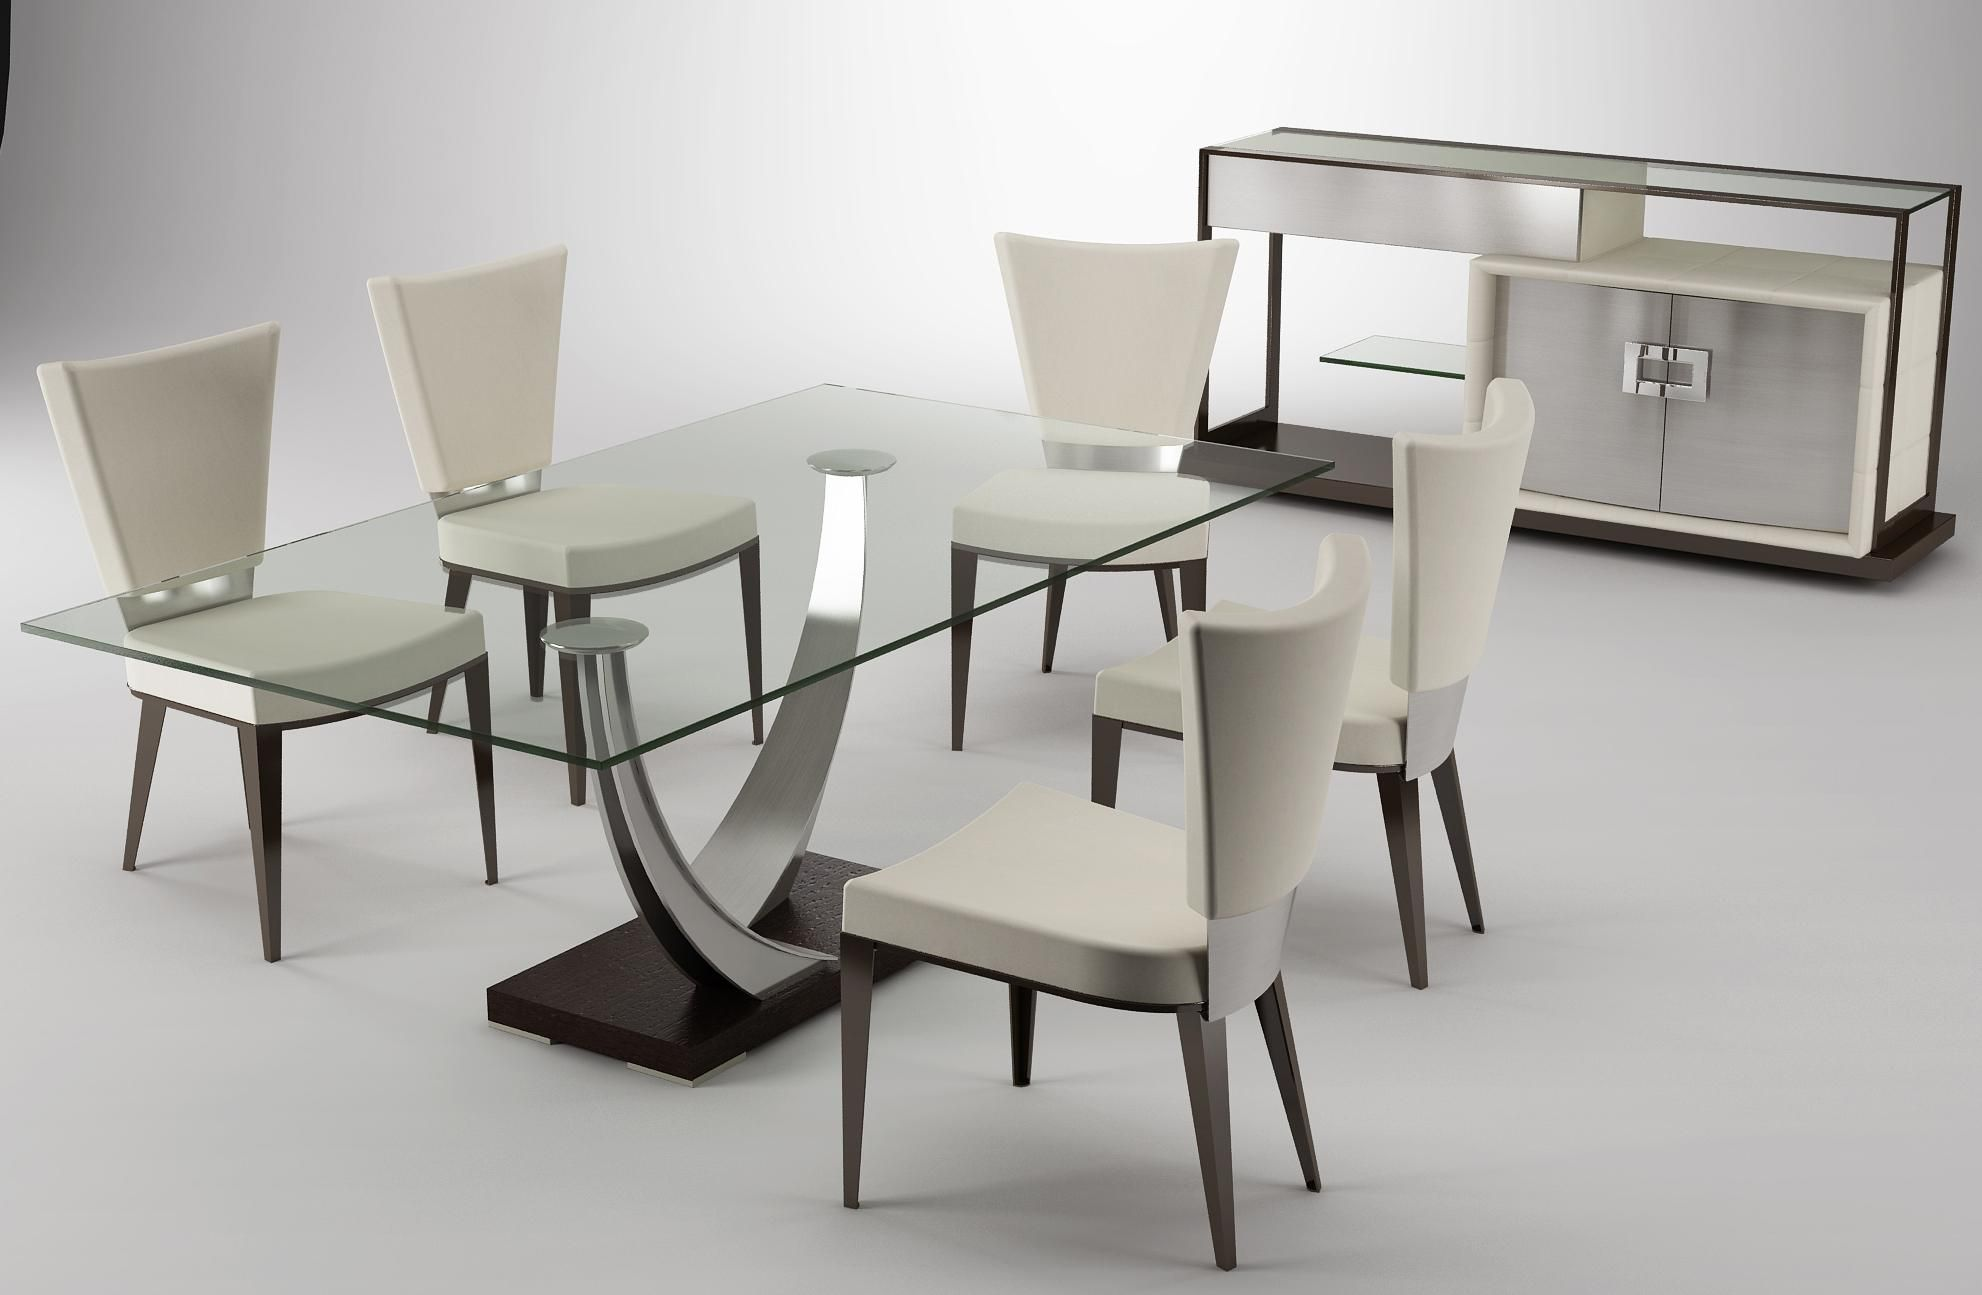 Designer Tische Esszimmer Amazing Modern Stylish Dining Room Table Set Designs Elite